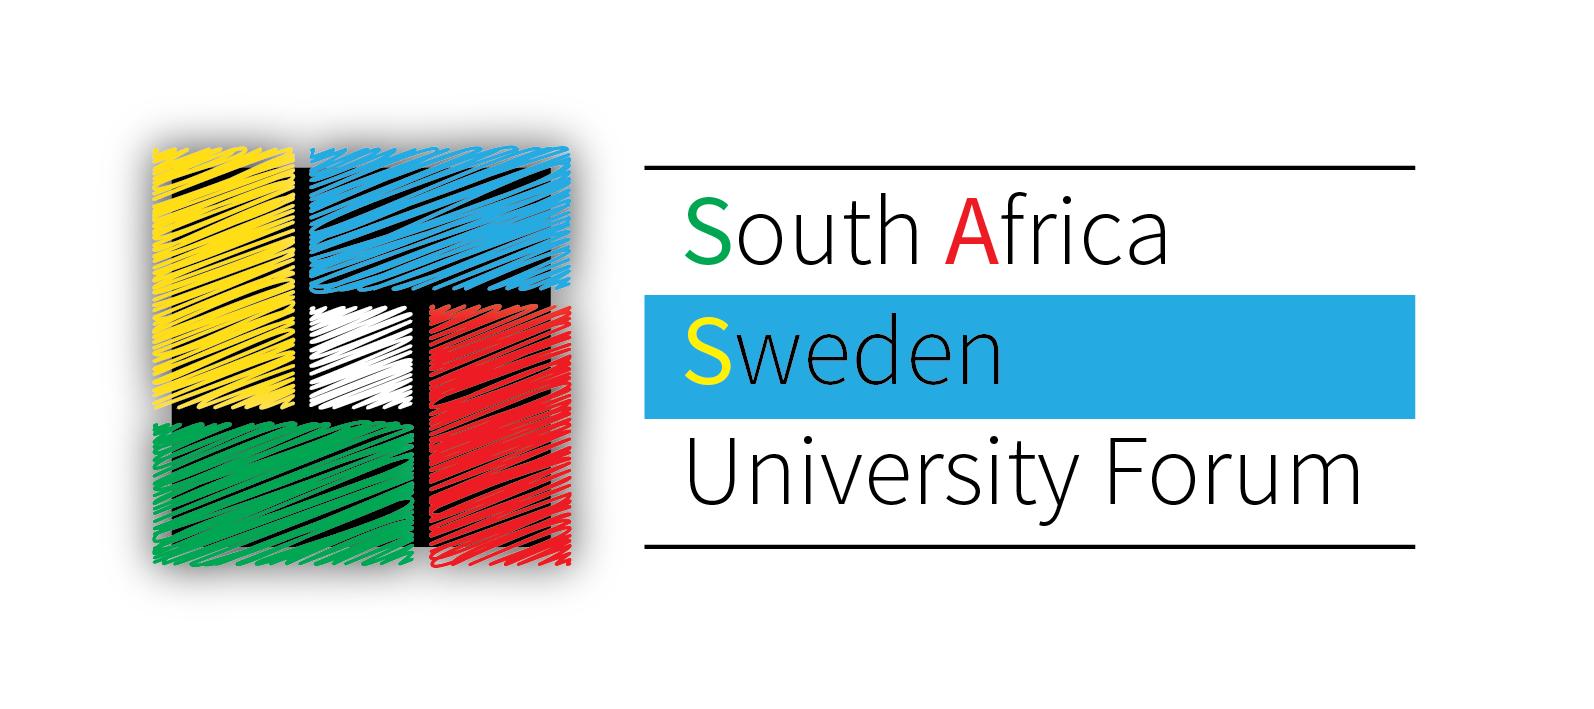 South Africa Sweden University Forum logotyp